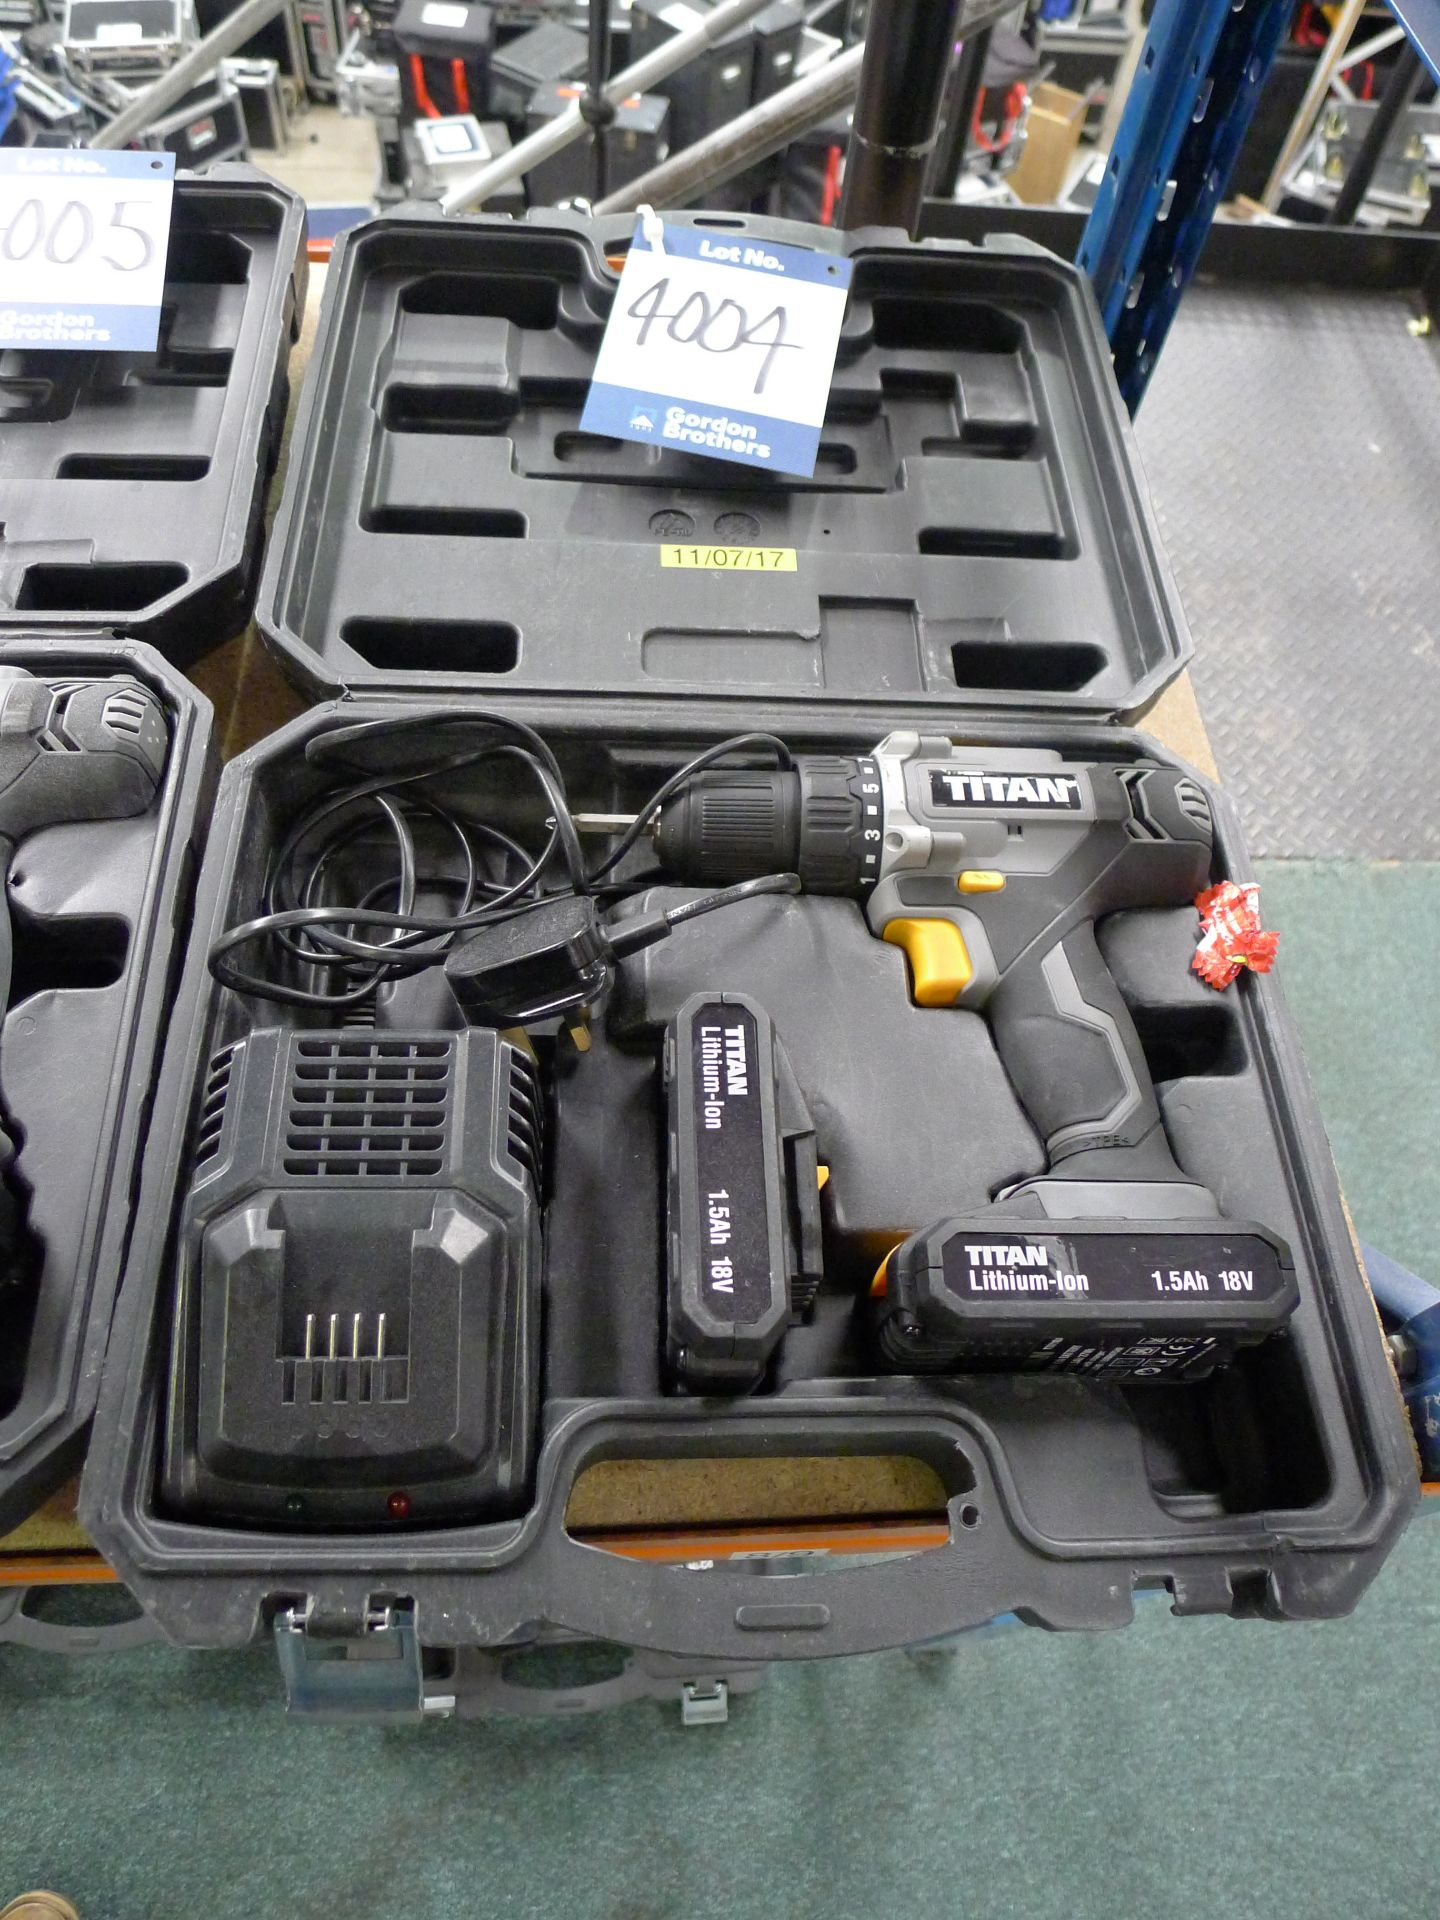 Lot 4004 - Titan 18 V Drill Driver with Charger and Spare Bat